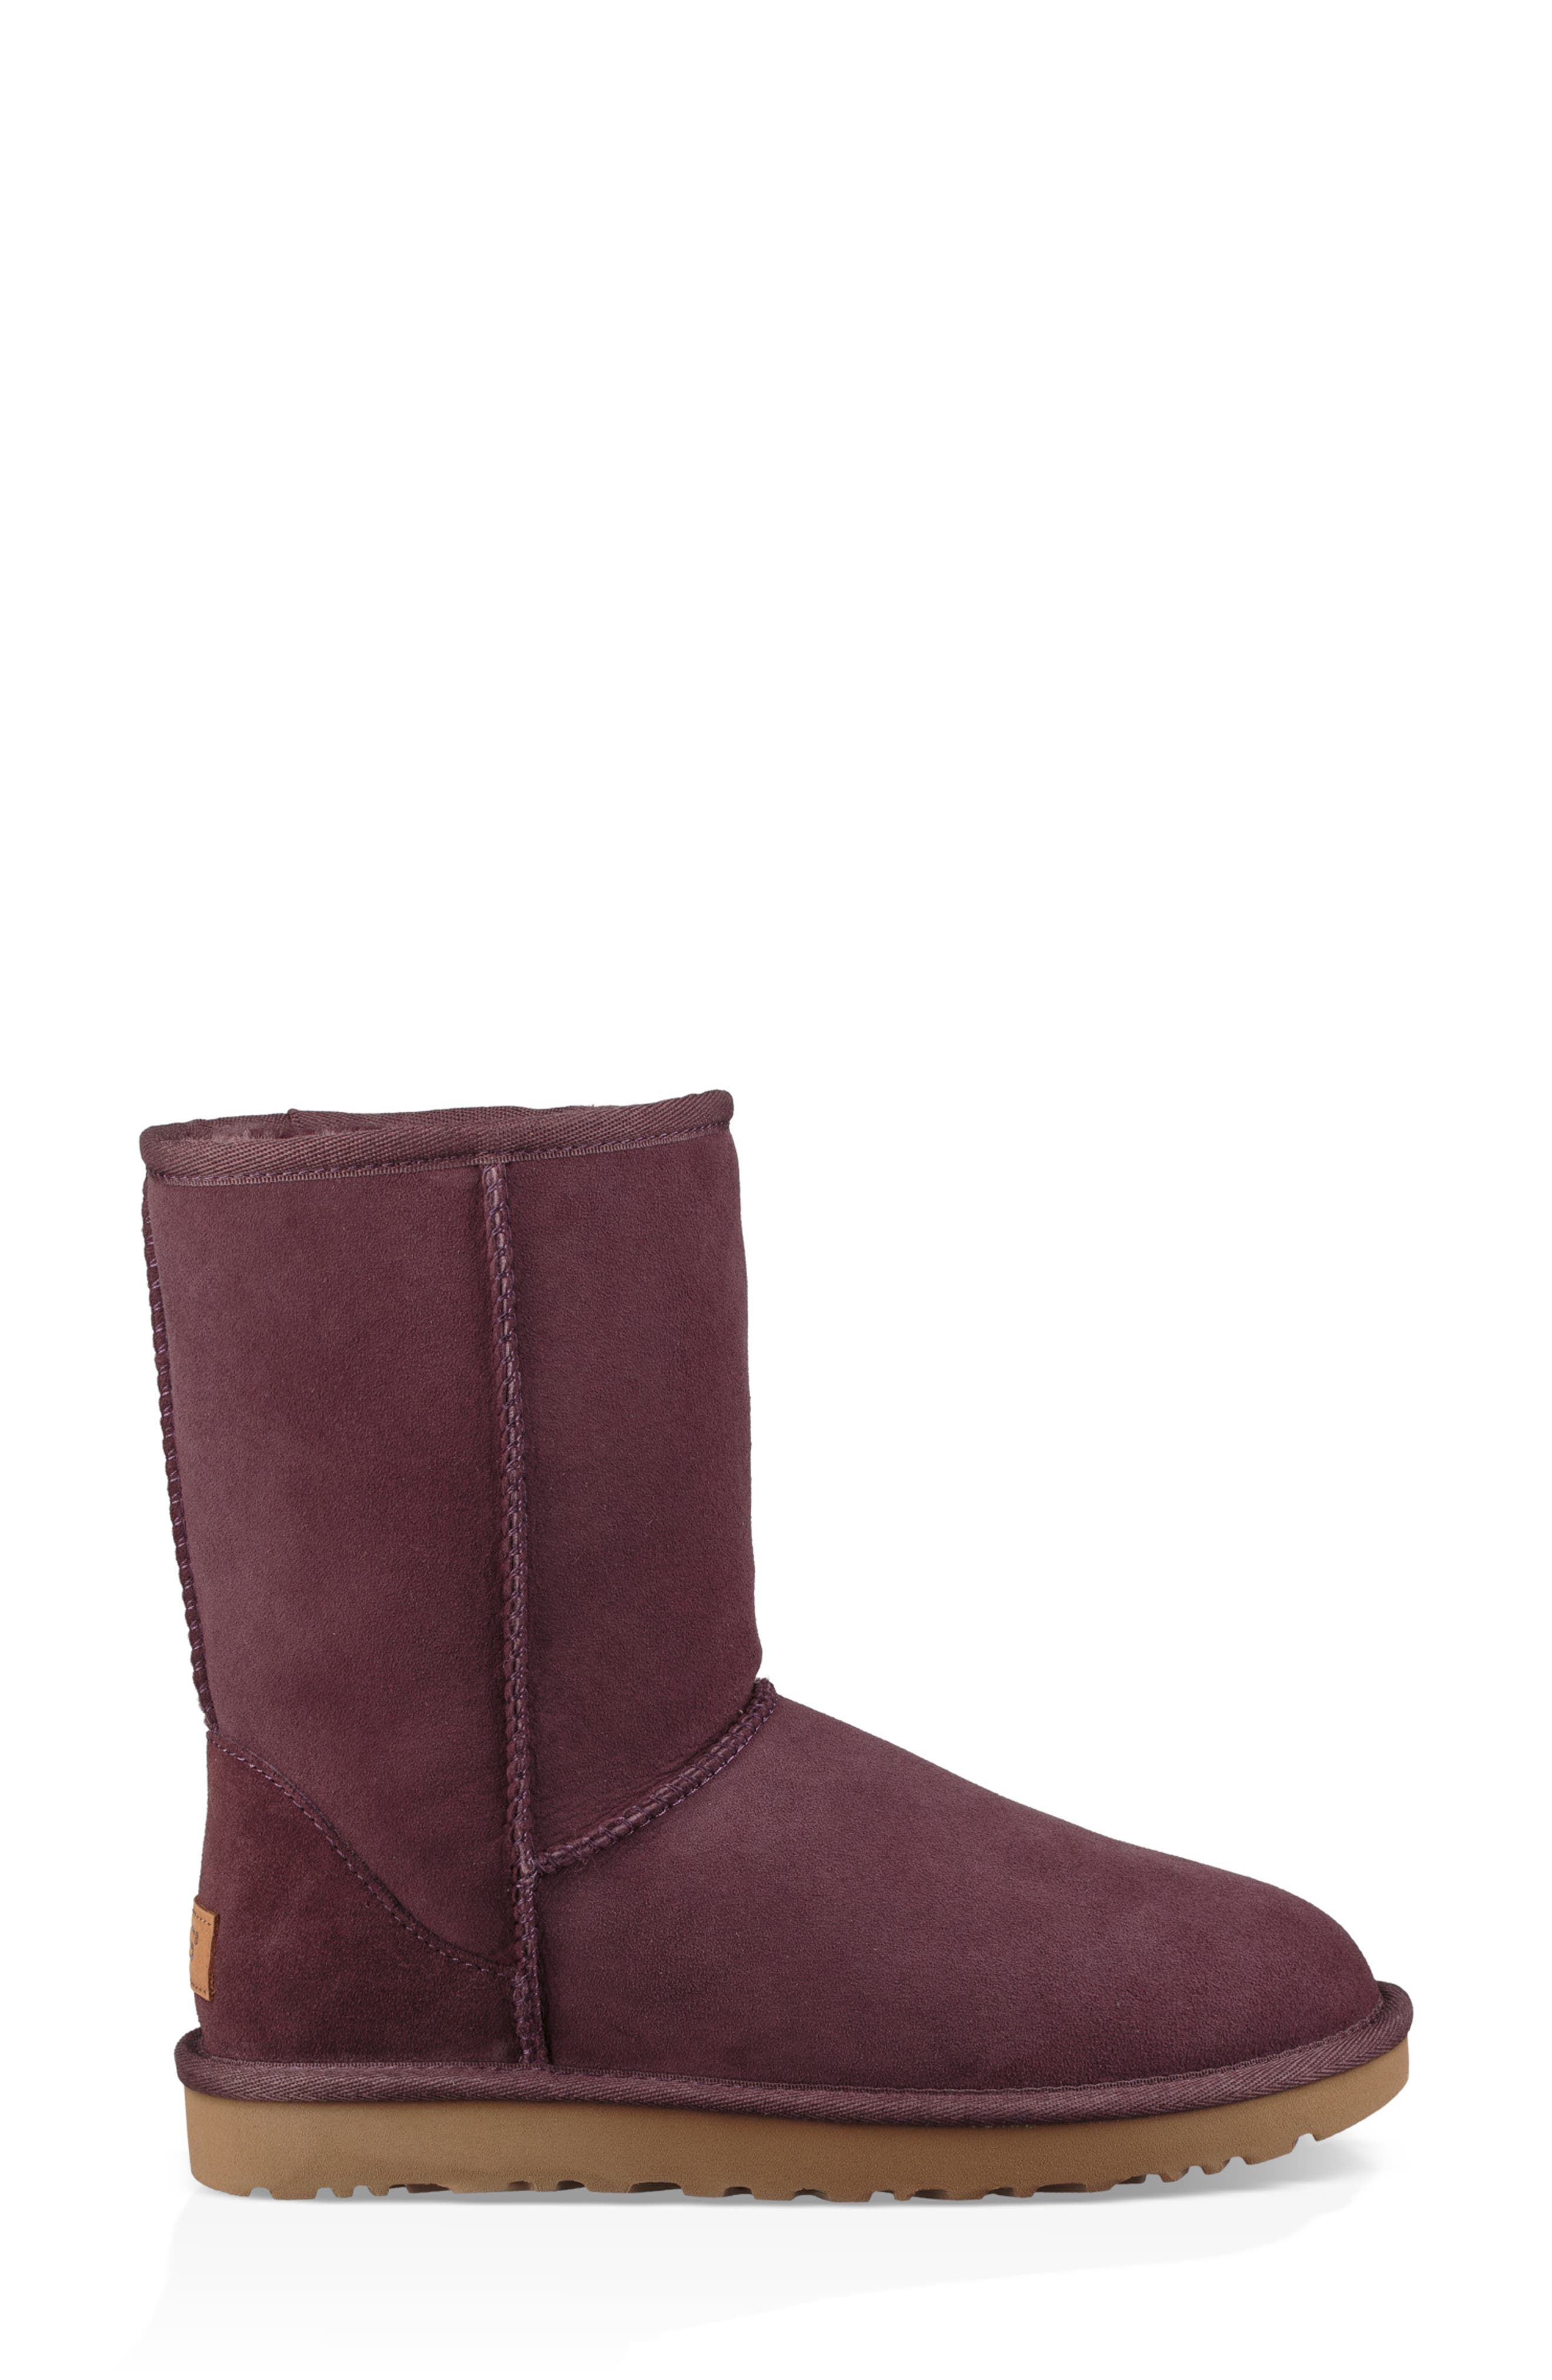 'Classic II' Genuine Shearling Lined Short Boot,                             Alternate thumbnail 4, color,                             Port